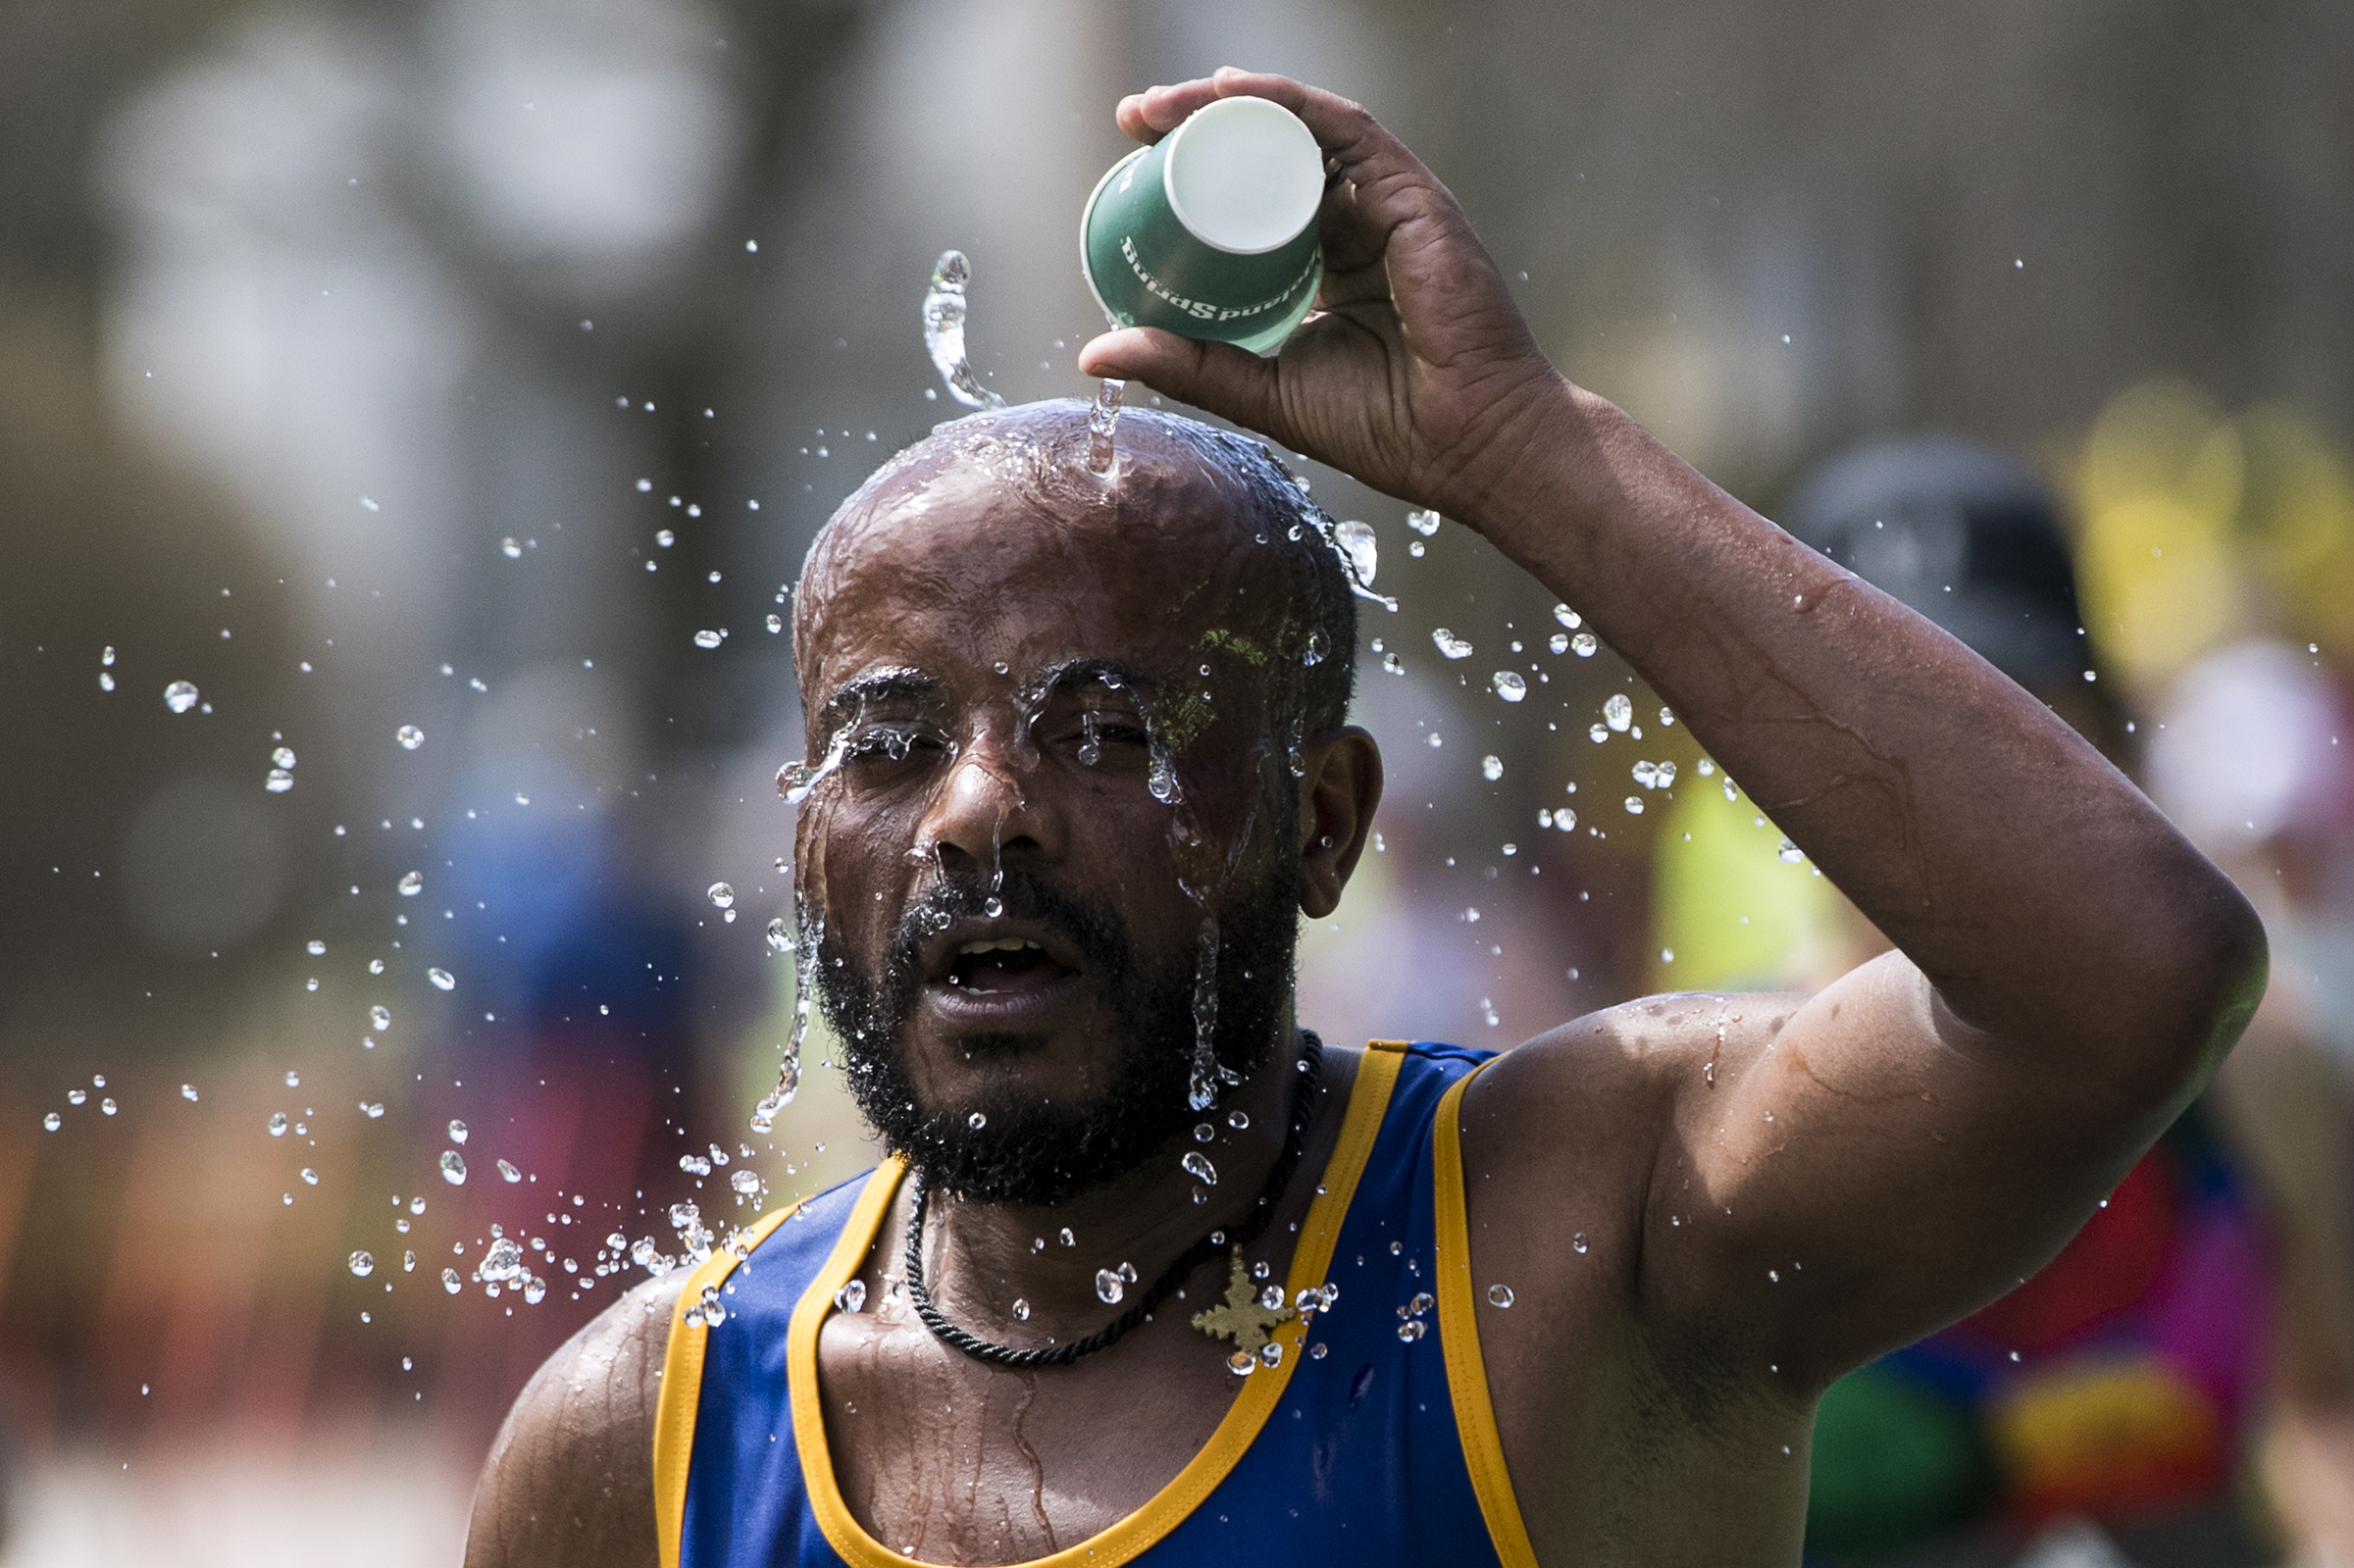 Joseph Makonnen, of California, cools off during the 2019 Boston Marathon along Commonwealth Avenue in Newton on April 15, 2019.